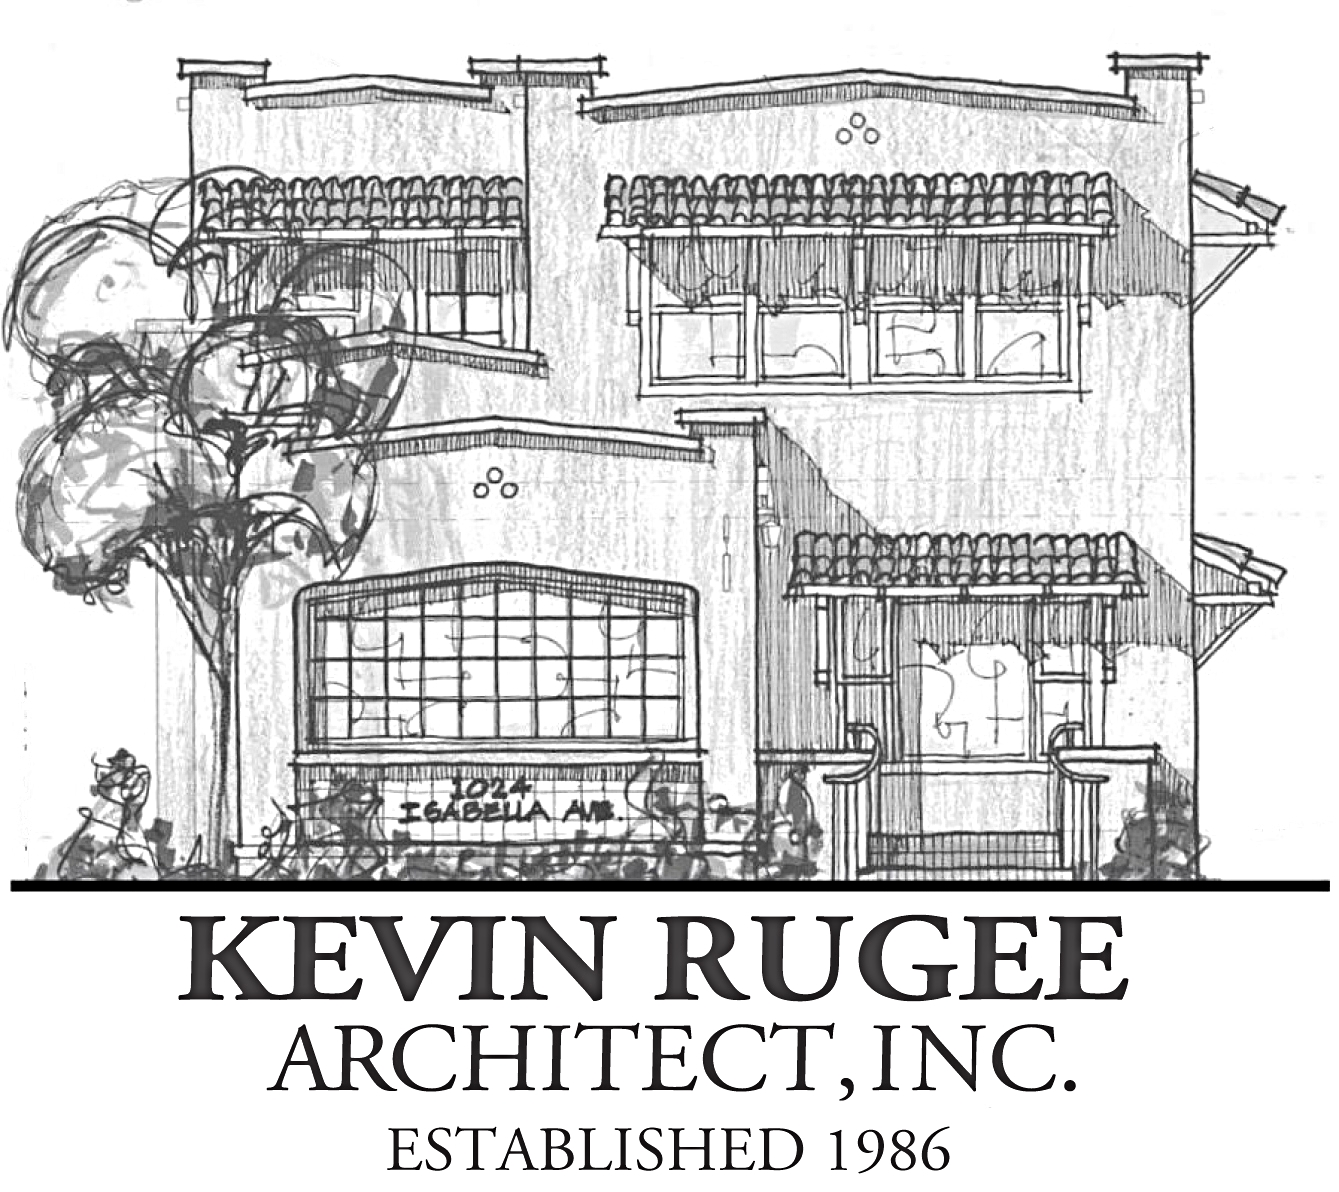 Kevin Rugee Architect, Inc.